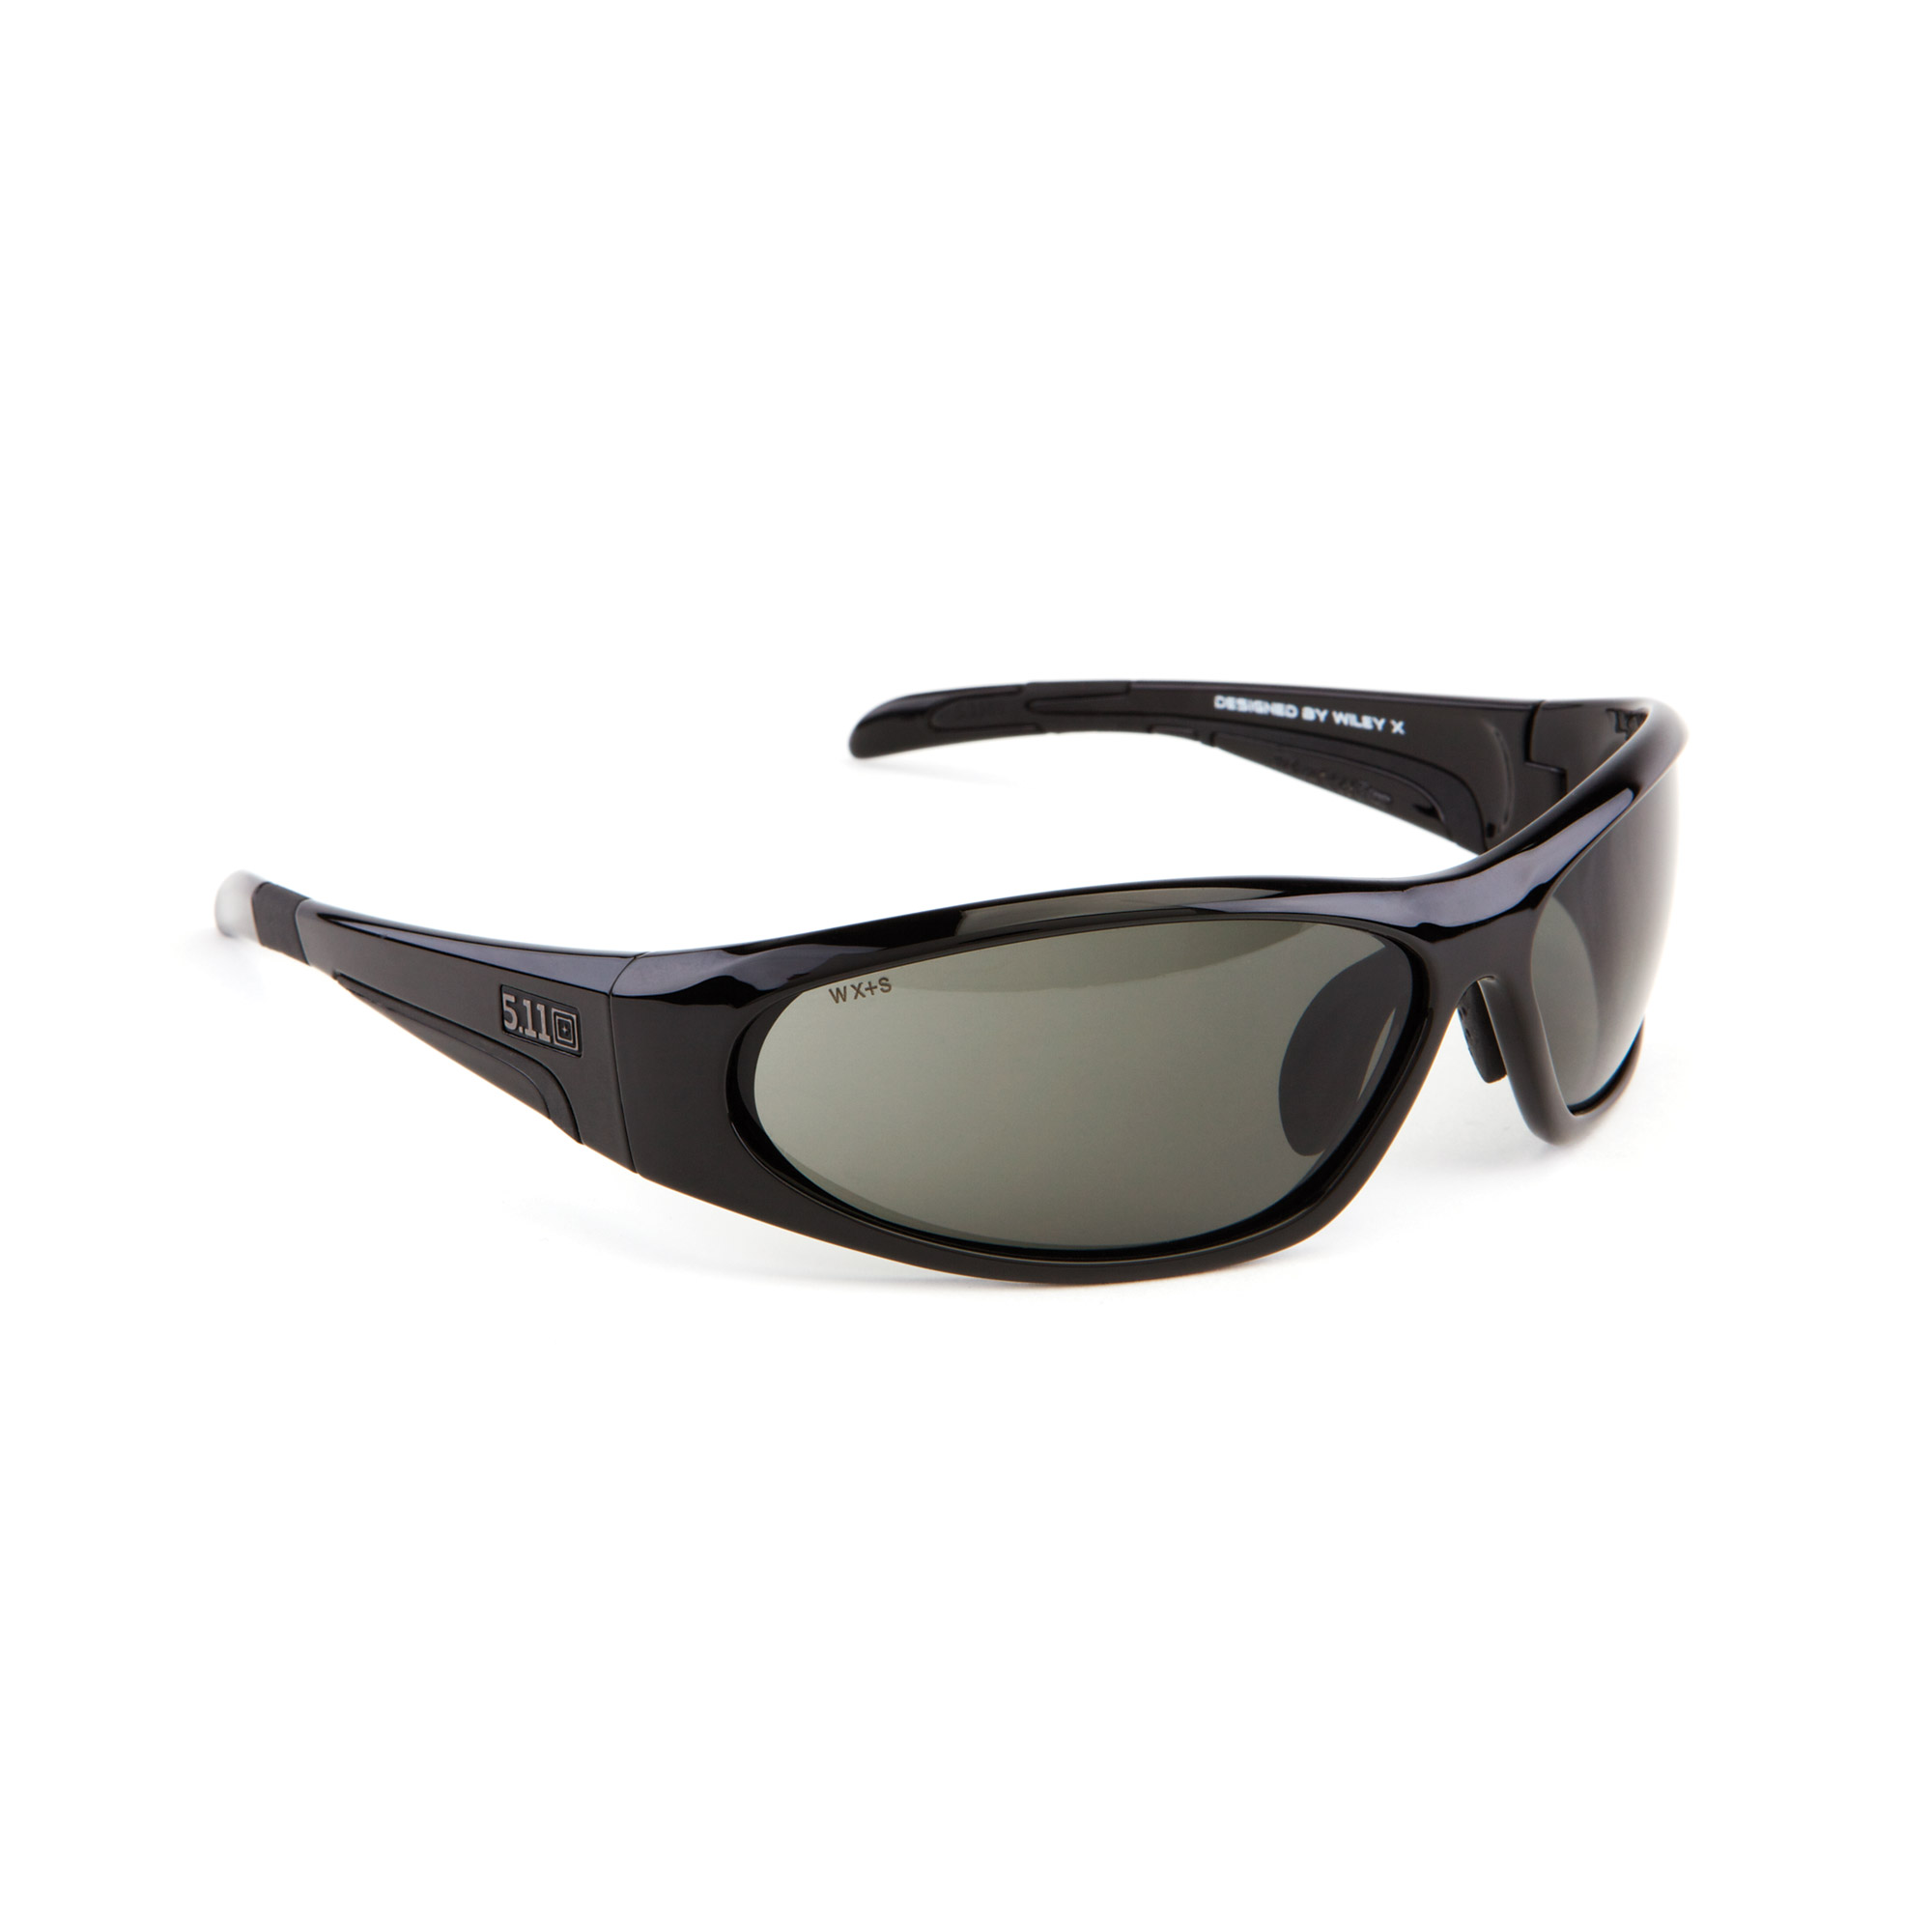 96bb512e56 Tactical Express - Eyewear Hearing Protection